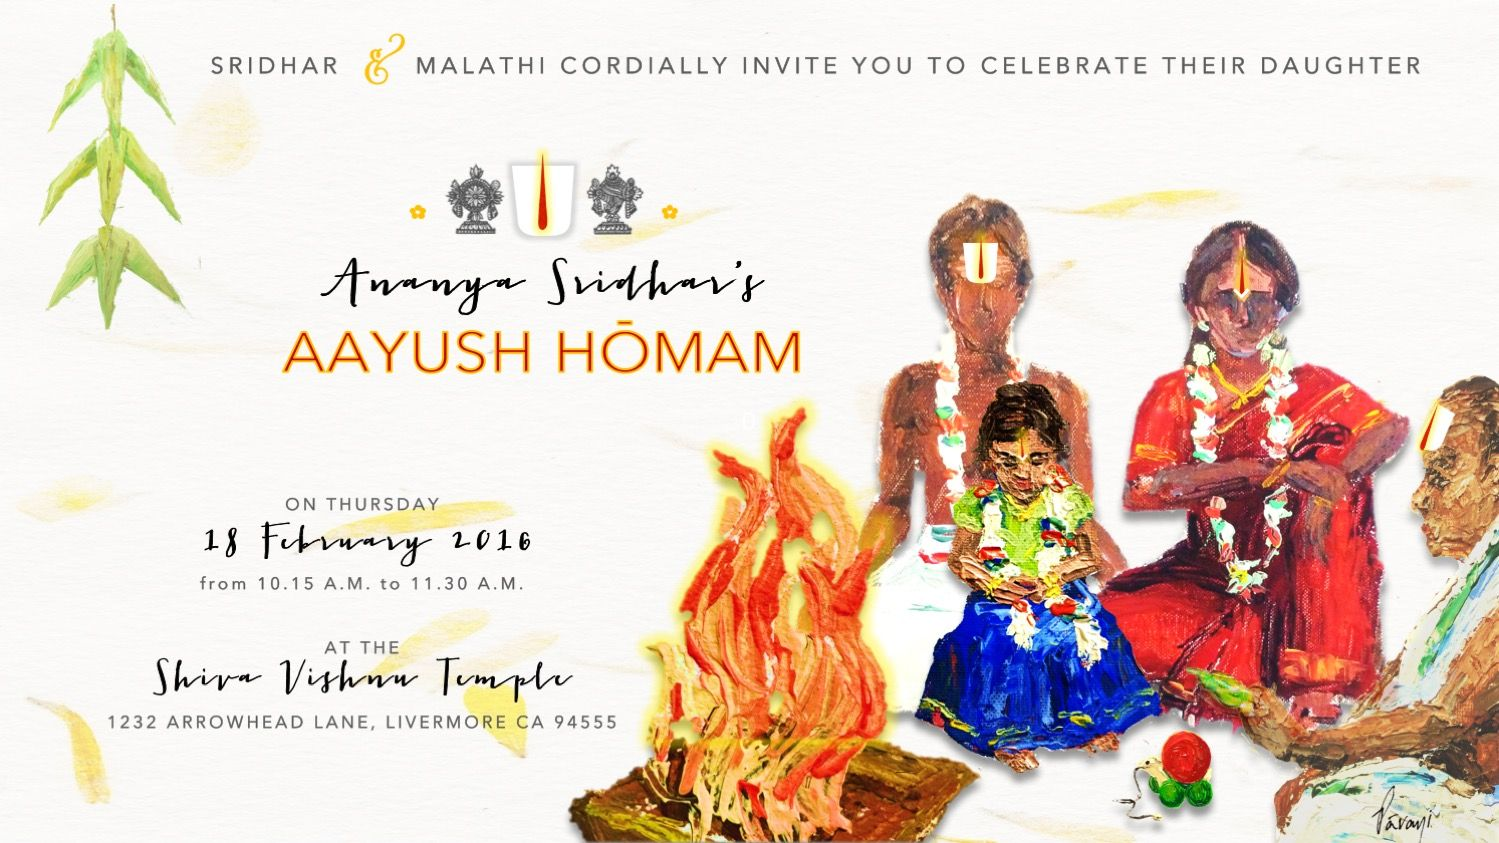 Ayush Homam Invitation Template | invacation1st.org